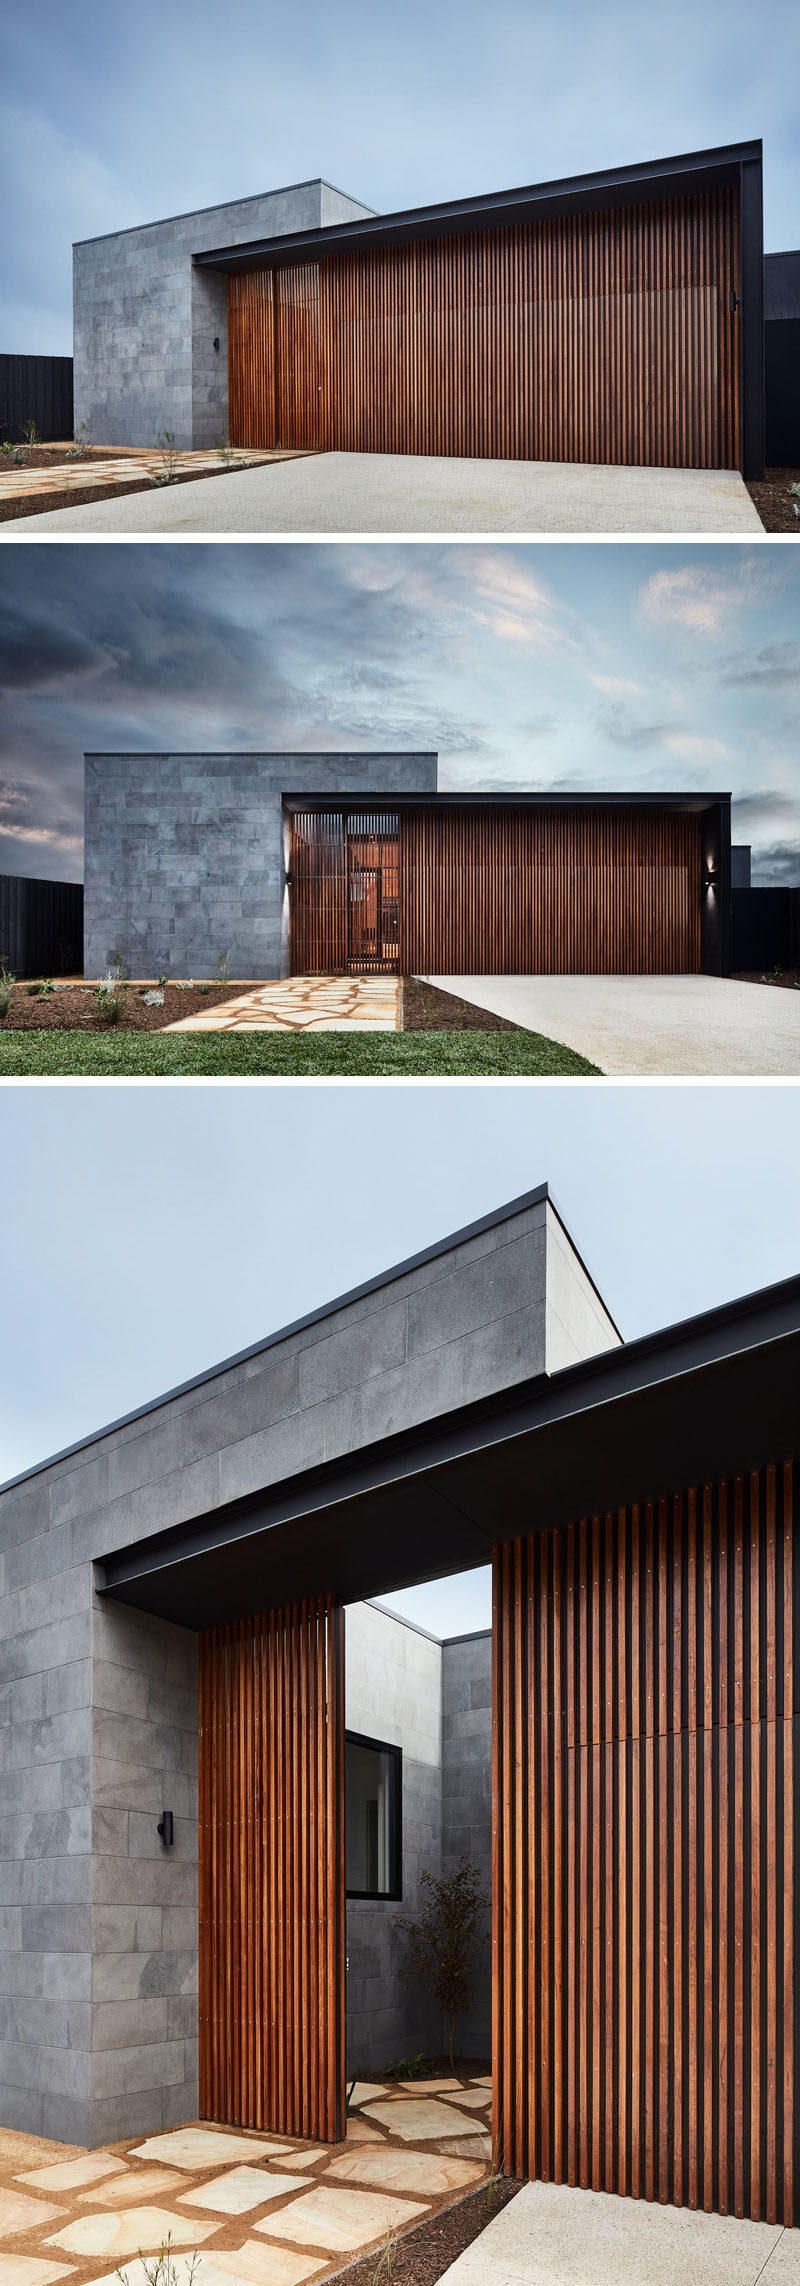 This modern house has a facade of horizontal bluestone slabs and vertical natural hardwood. The front door to the home blends in with the vertical wood slats, creating a modern exterior. #ModernHouse #Stone #Wood